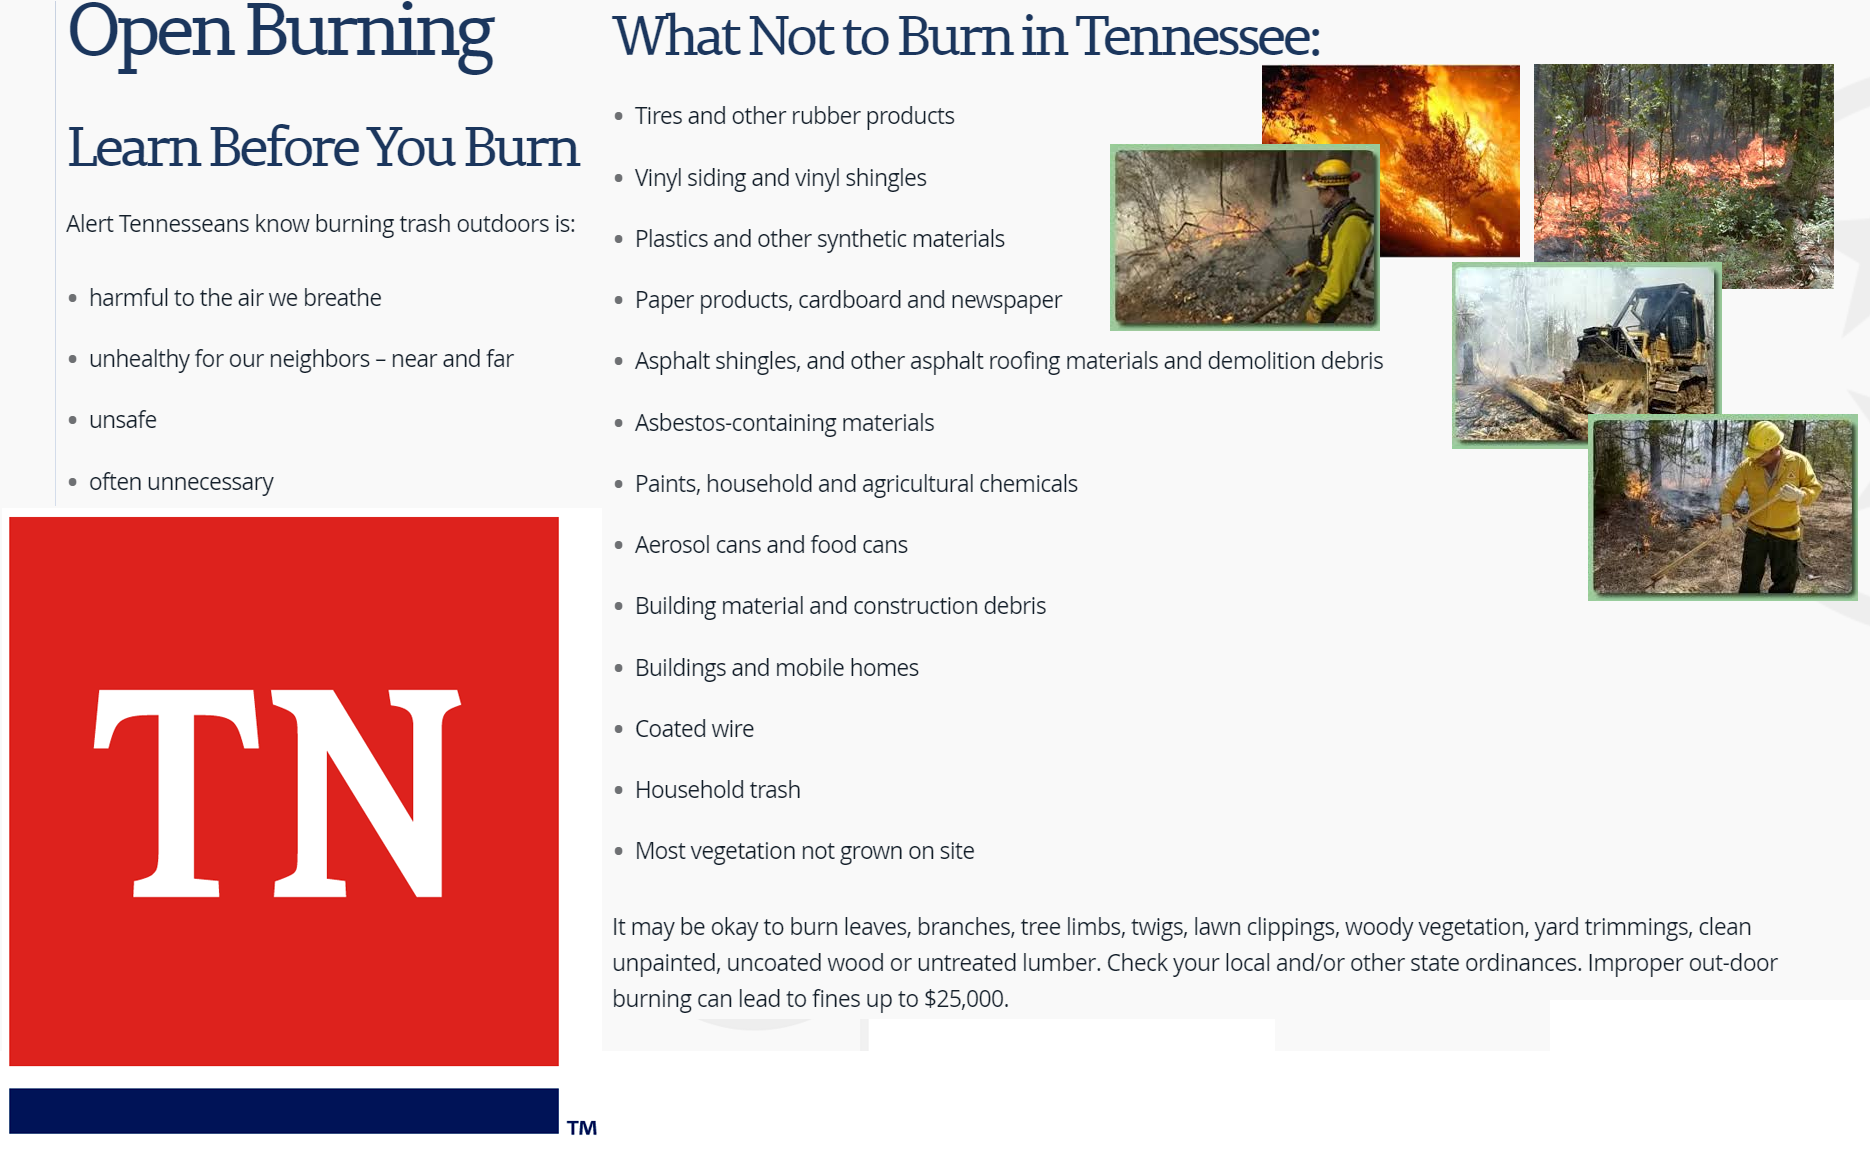 Obtaining a burn permit is free, fast, and simple. If you are burning a leaf or brush pile that is smaller than 8 feet by 8 feet in size, the online system provides a quick and efficient way to apply.